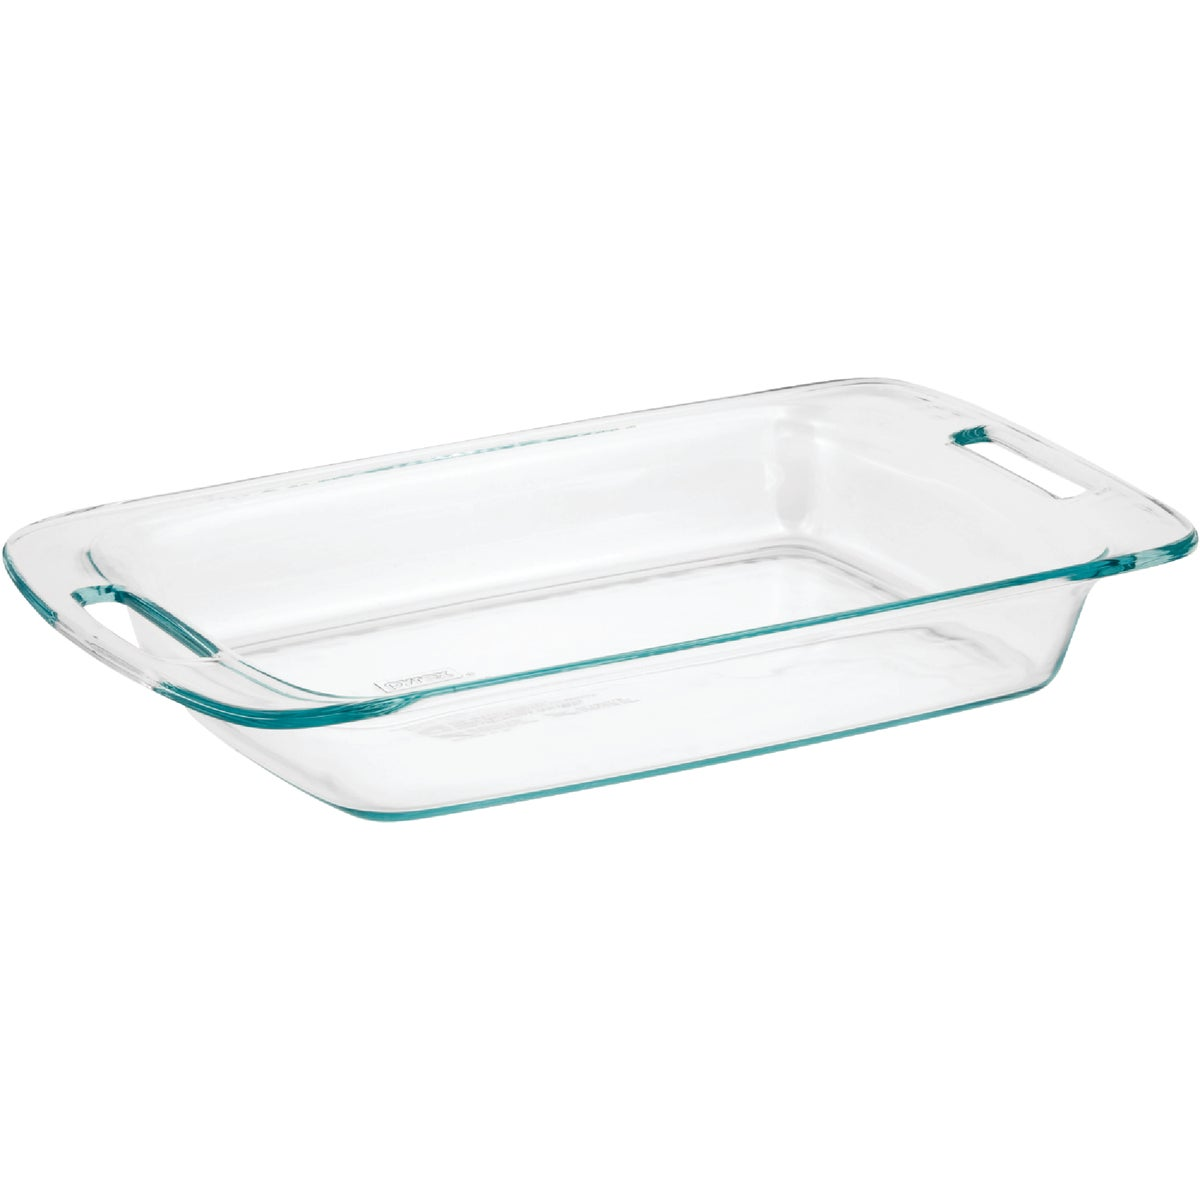 3QT OBLONG BAKING DISH - 1085782 by World Kitchen